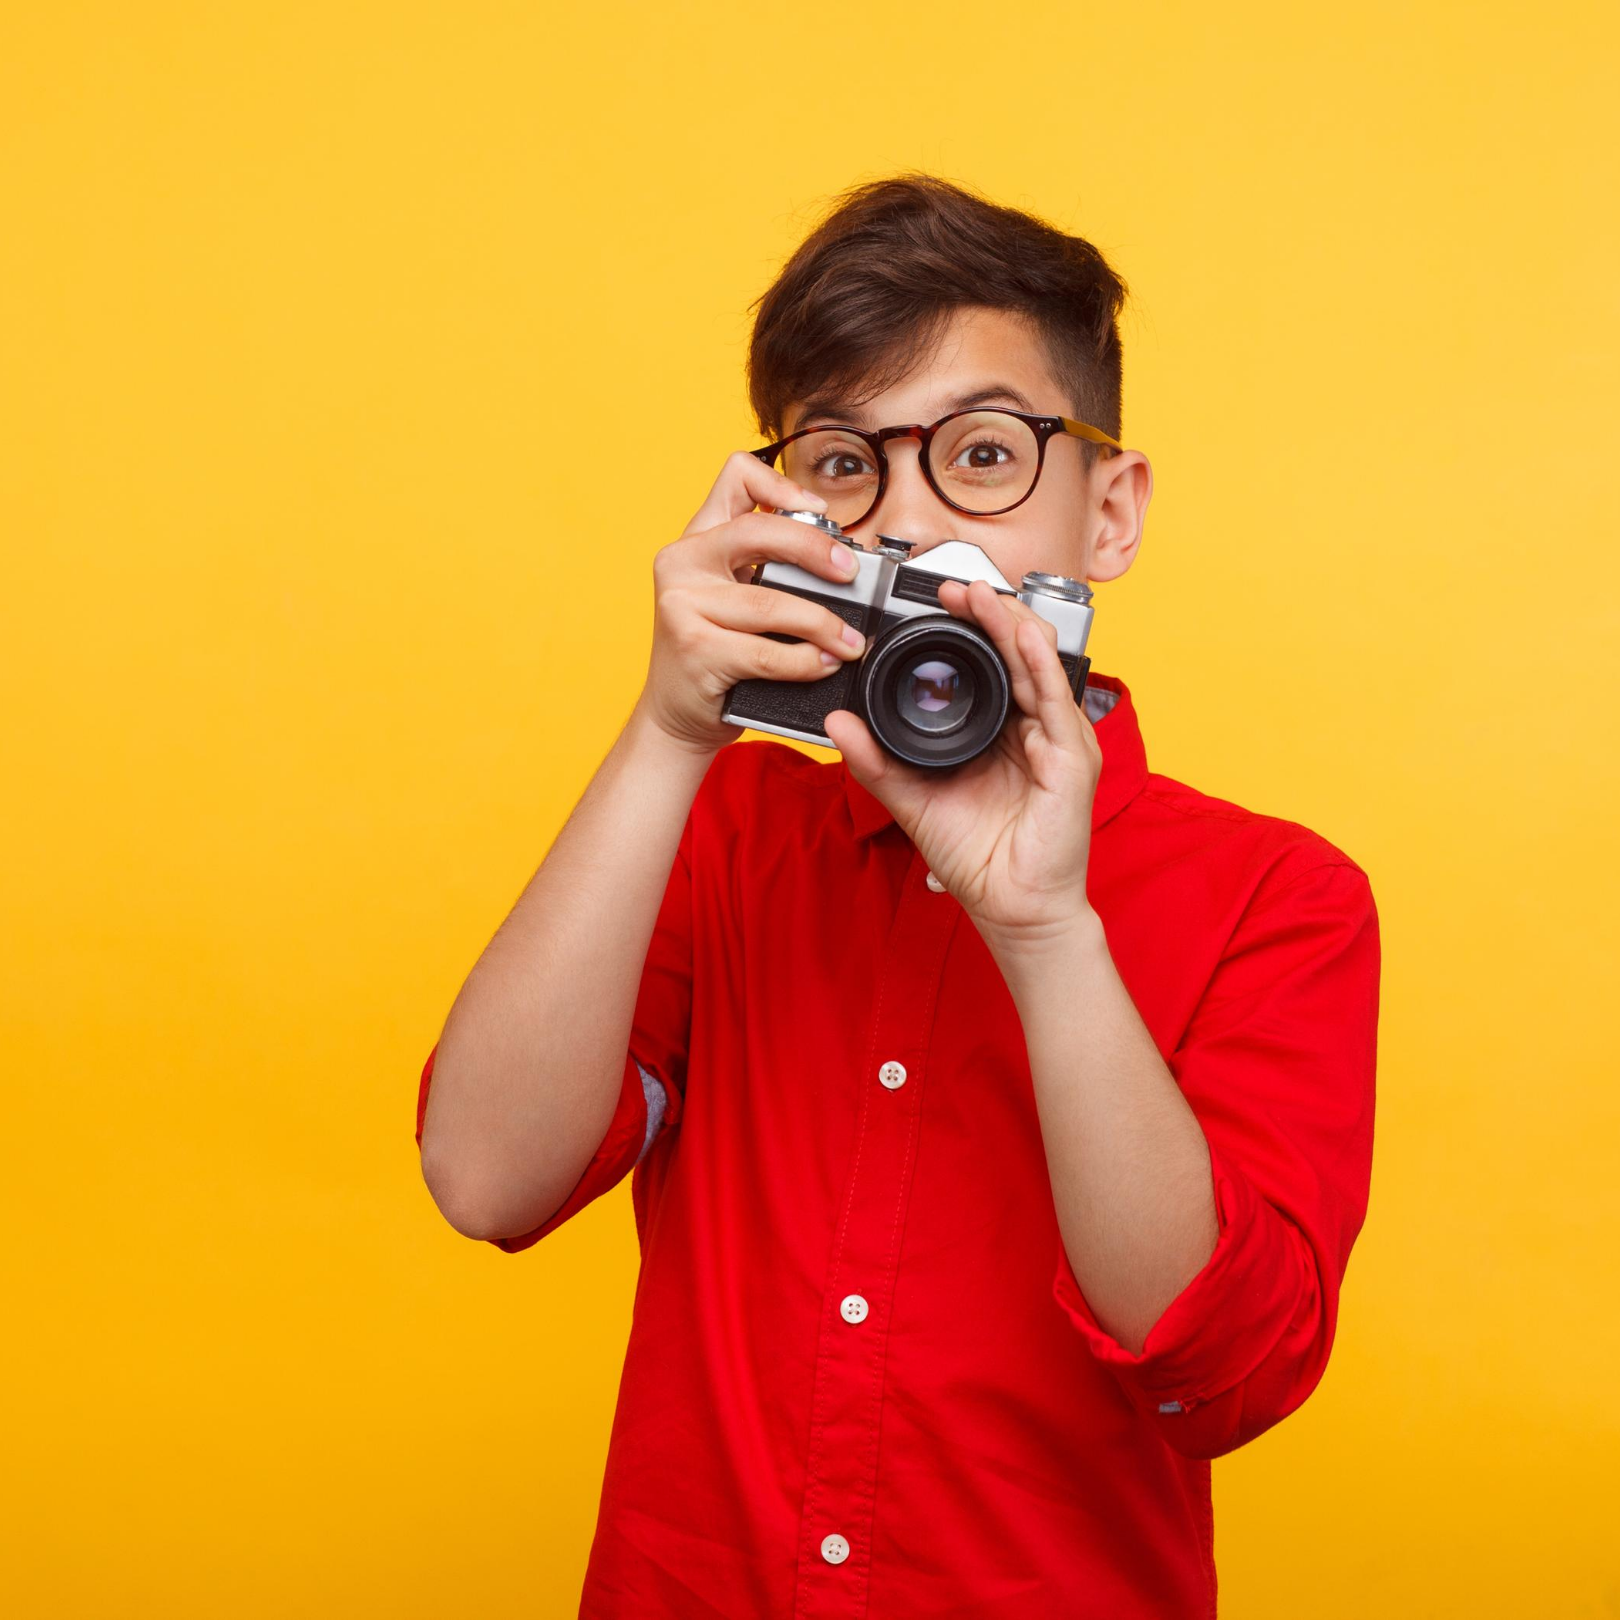 Basic Photography for Tweens